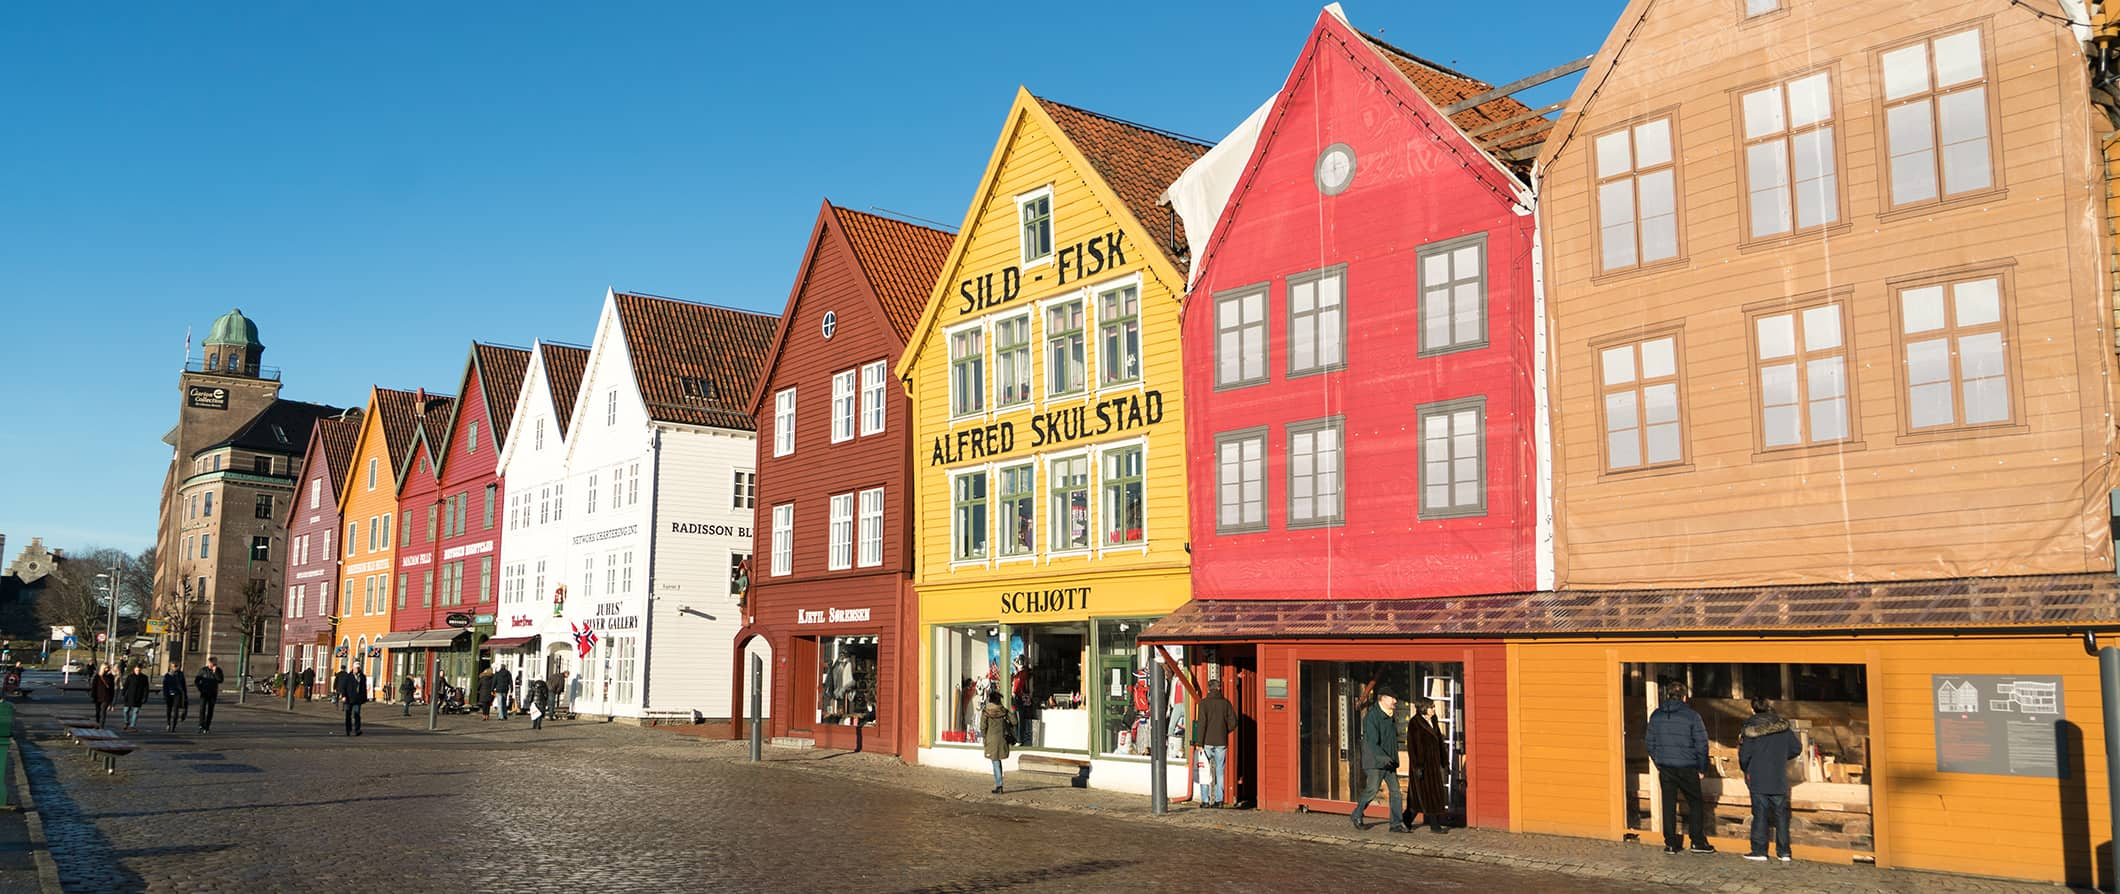 Bergen Travel Guide: What to See, Do, Costs, & Ways to Save